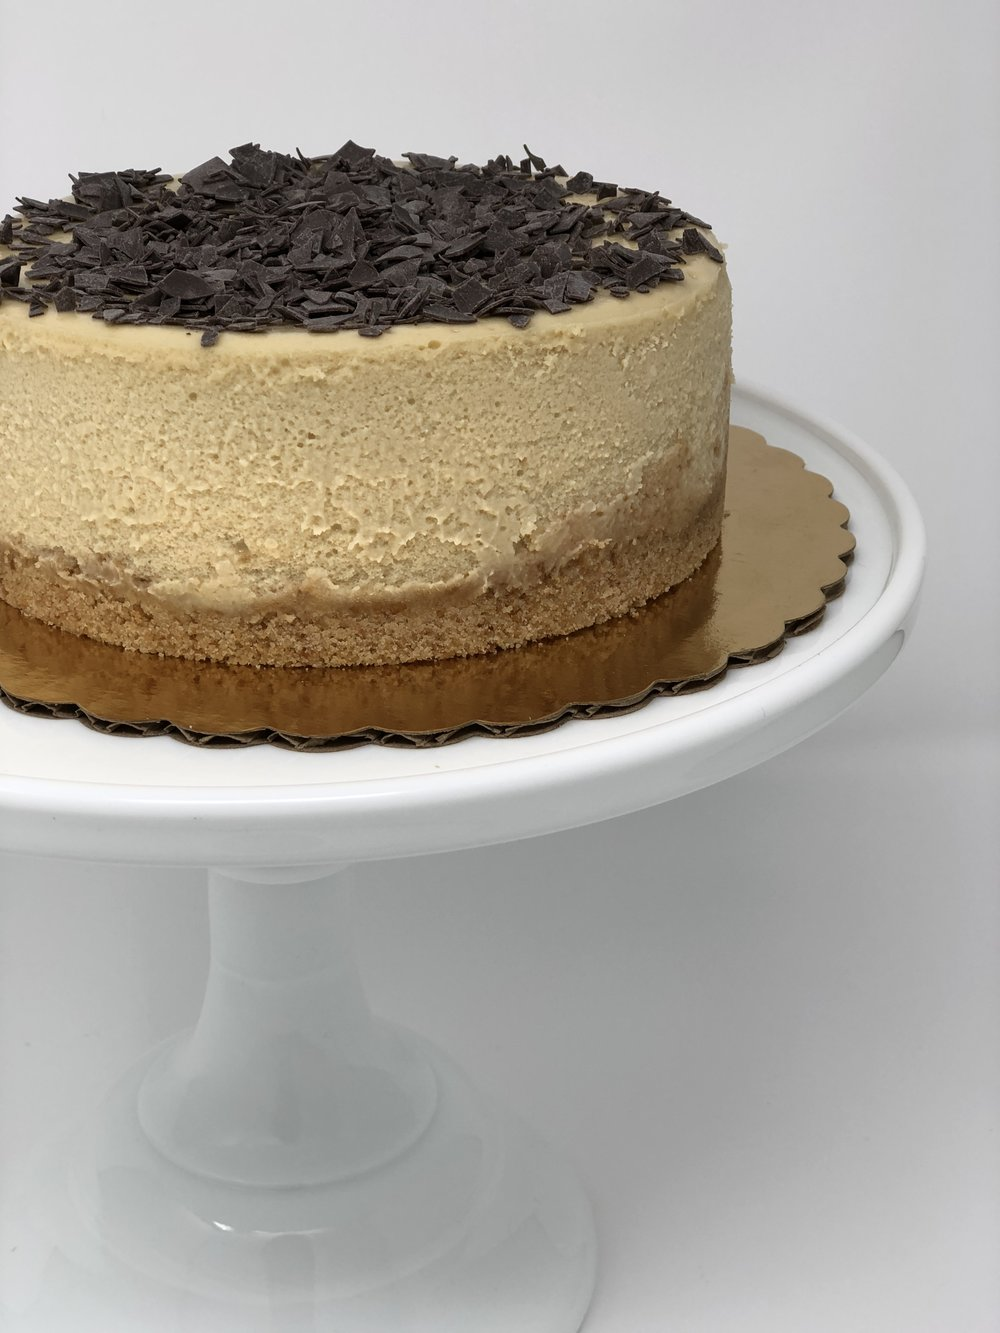 VIETNAMESE COFFEE CHEESECAKE - Coffee lovers, this one is for you! Using a Vietnamese coffee filter, we slow brew a dark french roast which after combined with our cheesecake batter creates a rich in flavor and incredibly creamy cheesecake. We highly suggest drizzling condensed milk right before serving for the full Vietnamese Coffee effect.